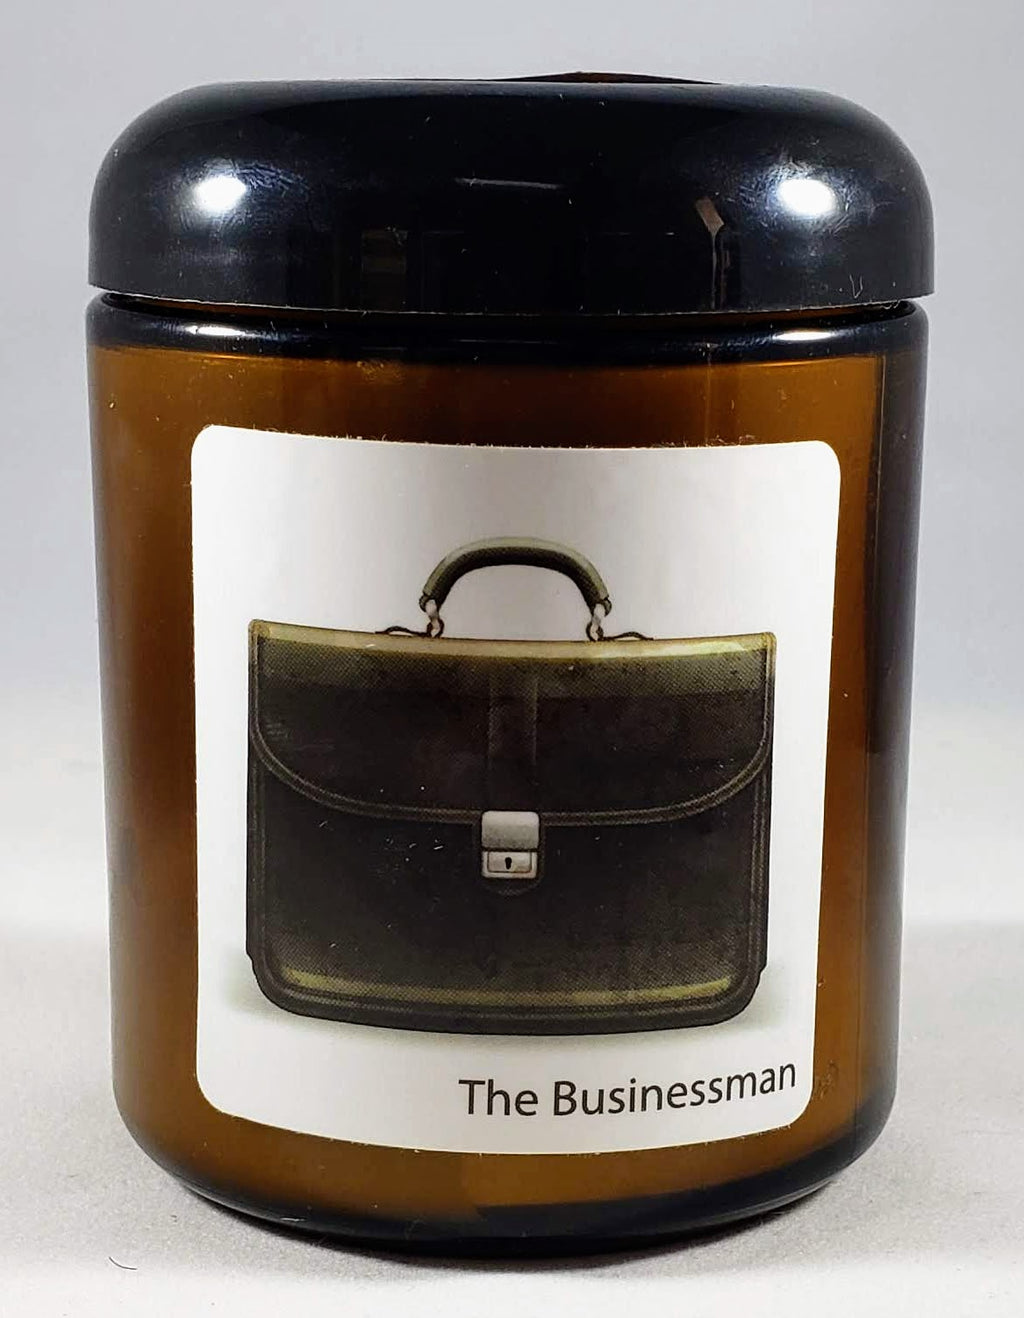 The Business Man Candle